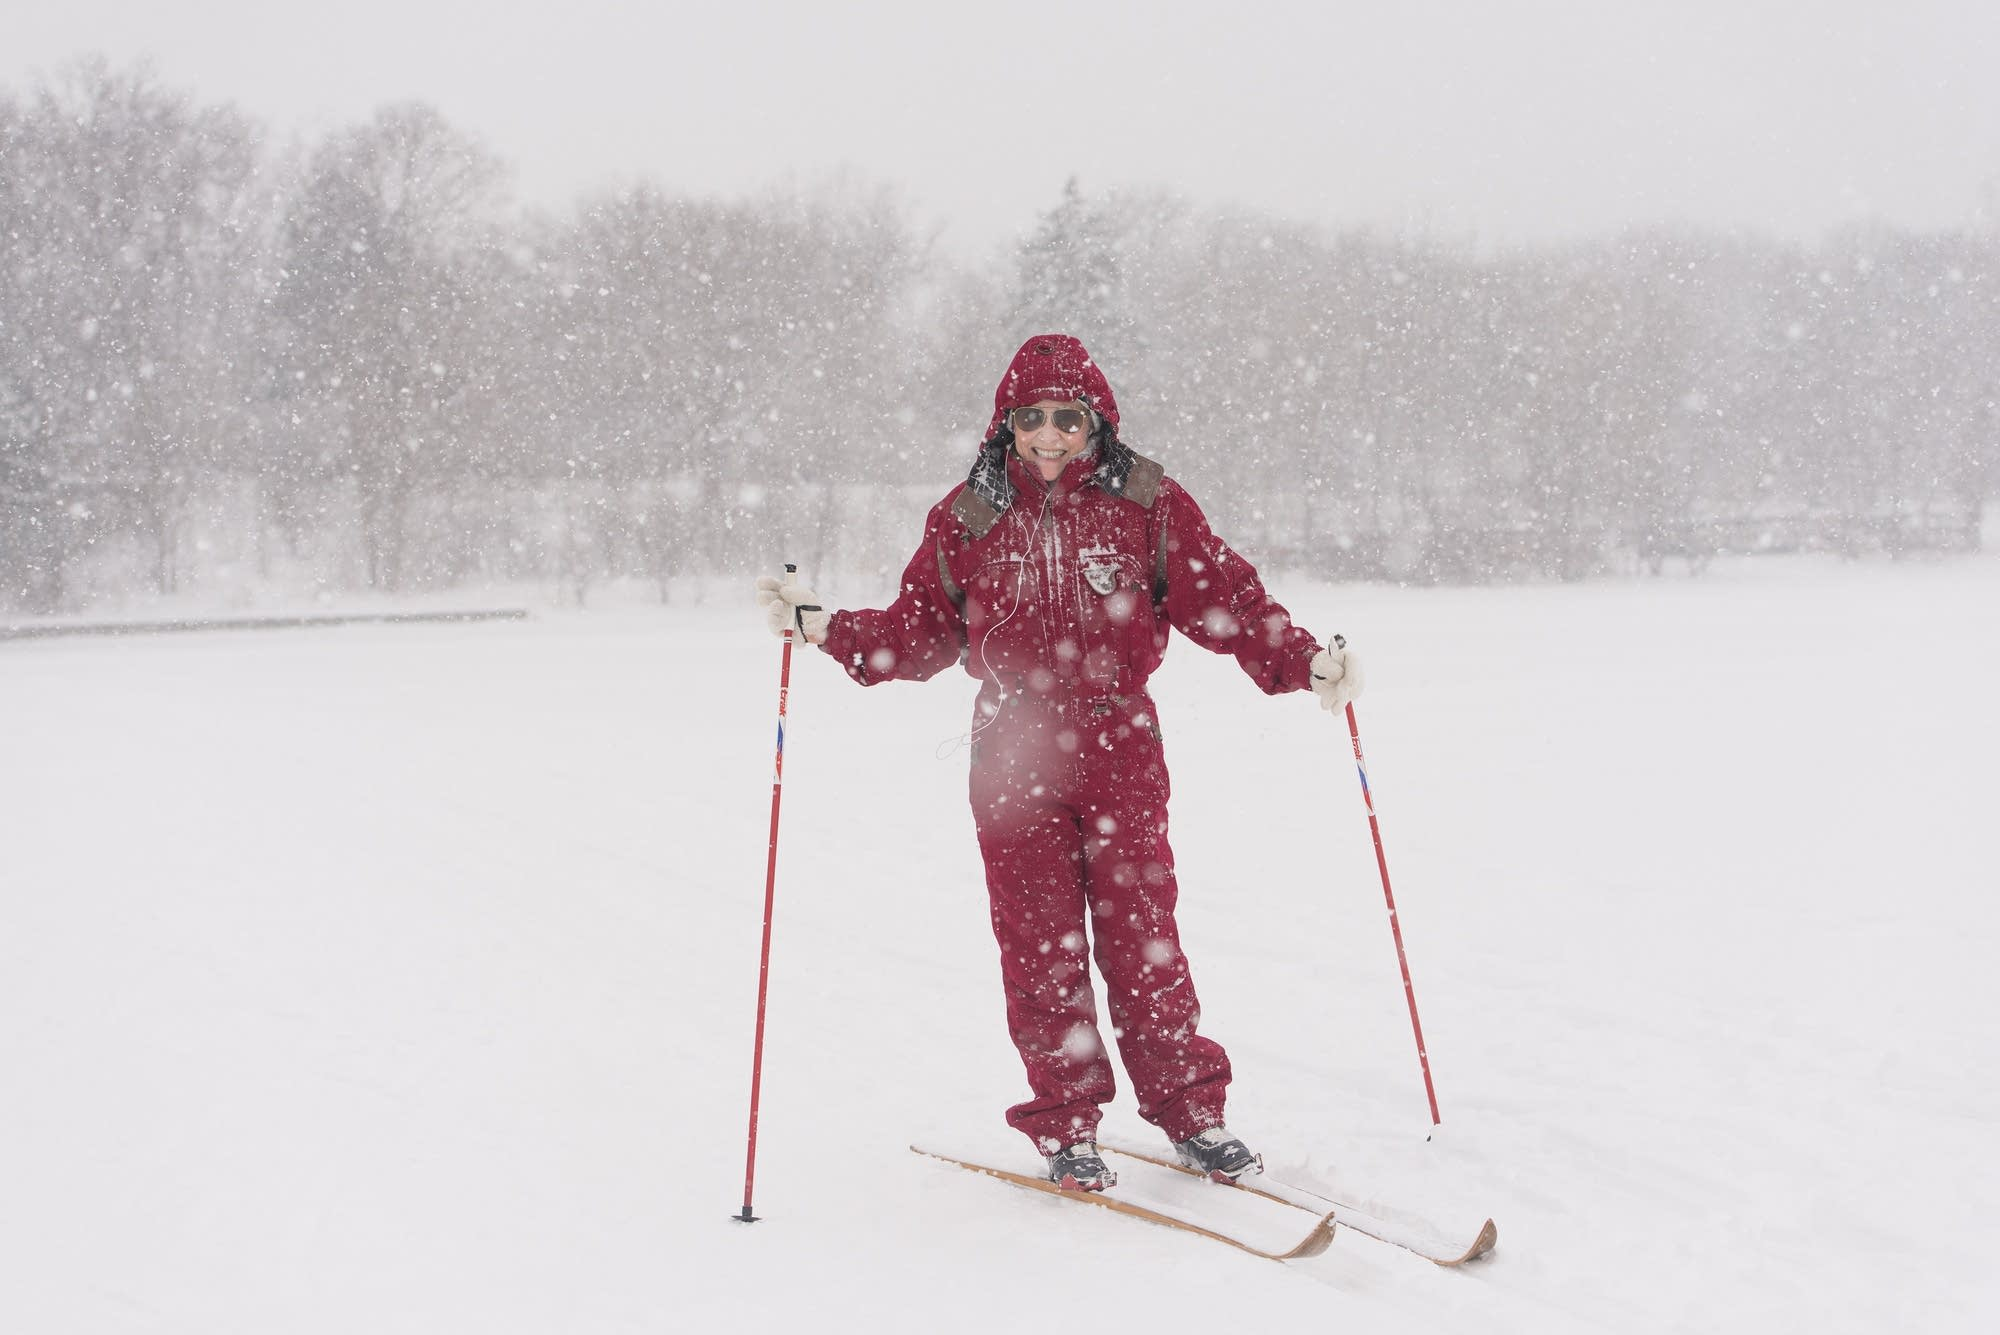 Heavy snow didn't stop Lesley Hauser from getting out on her skis.